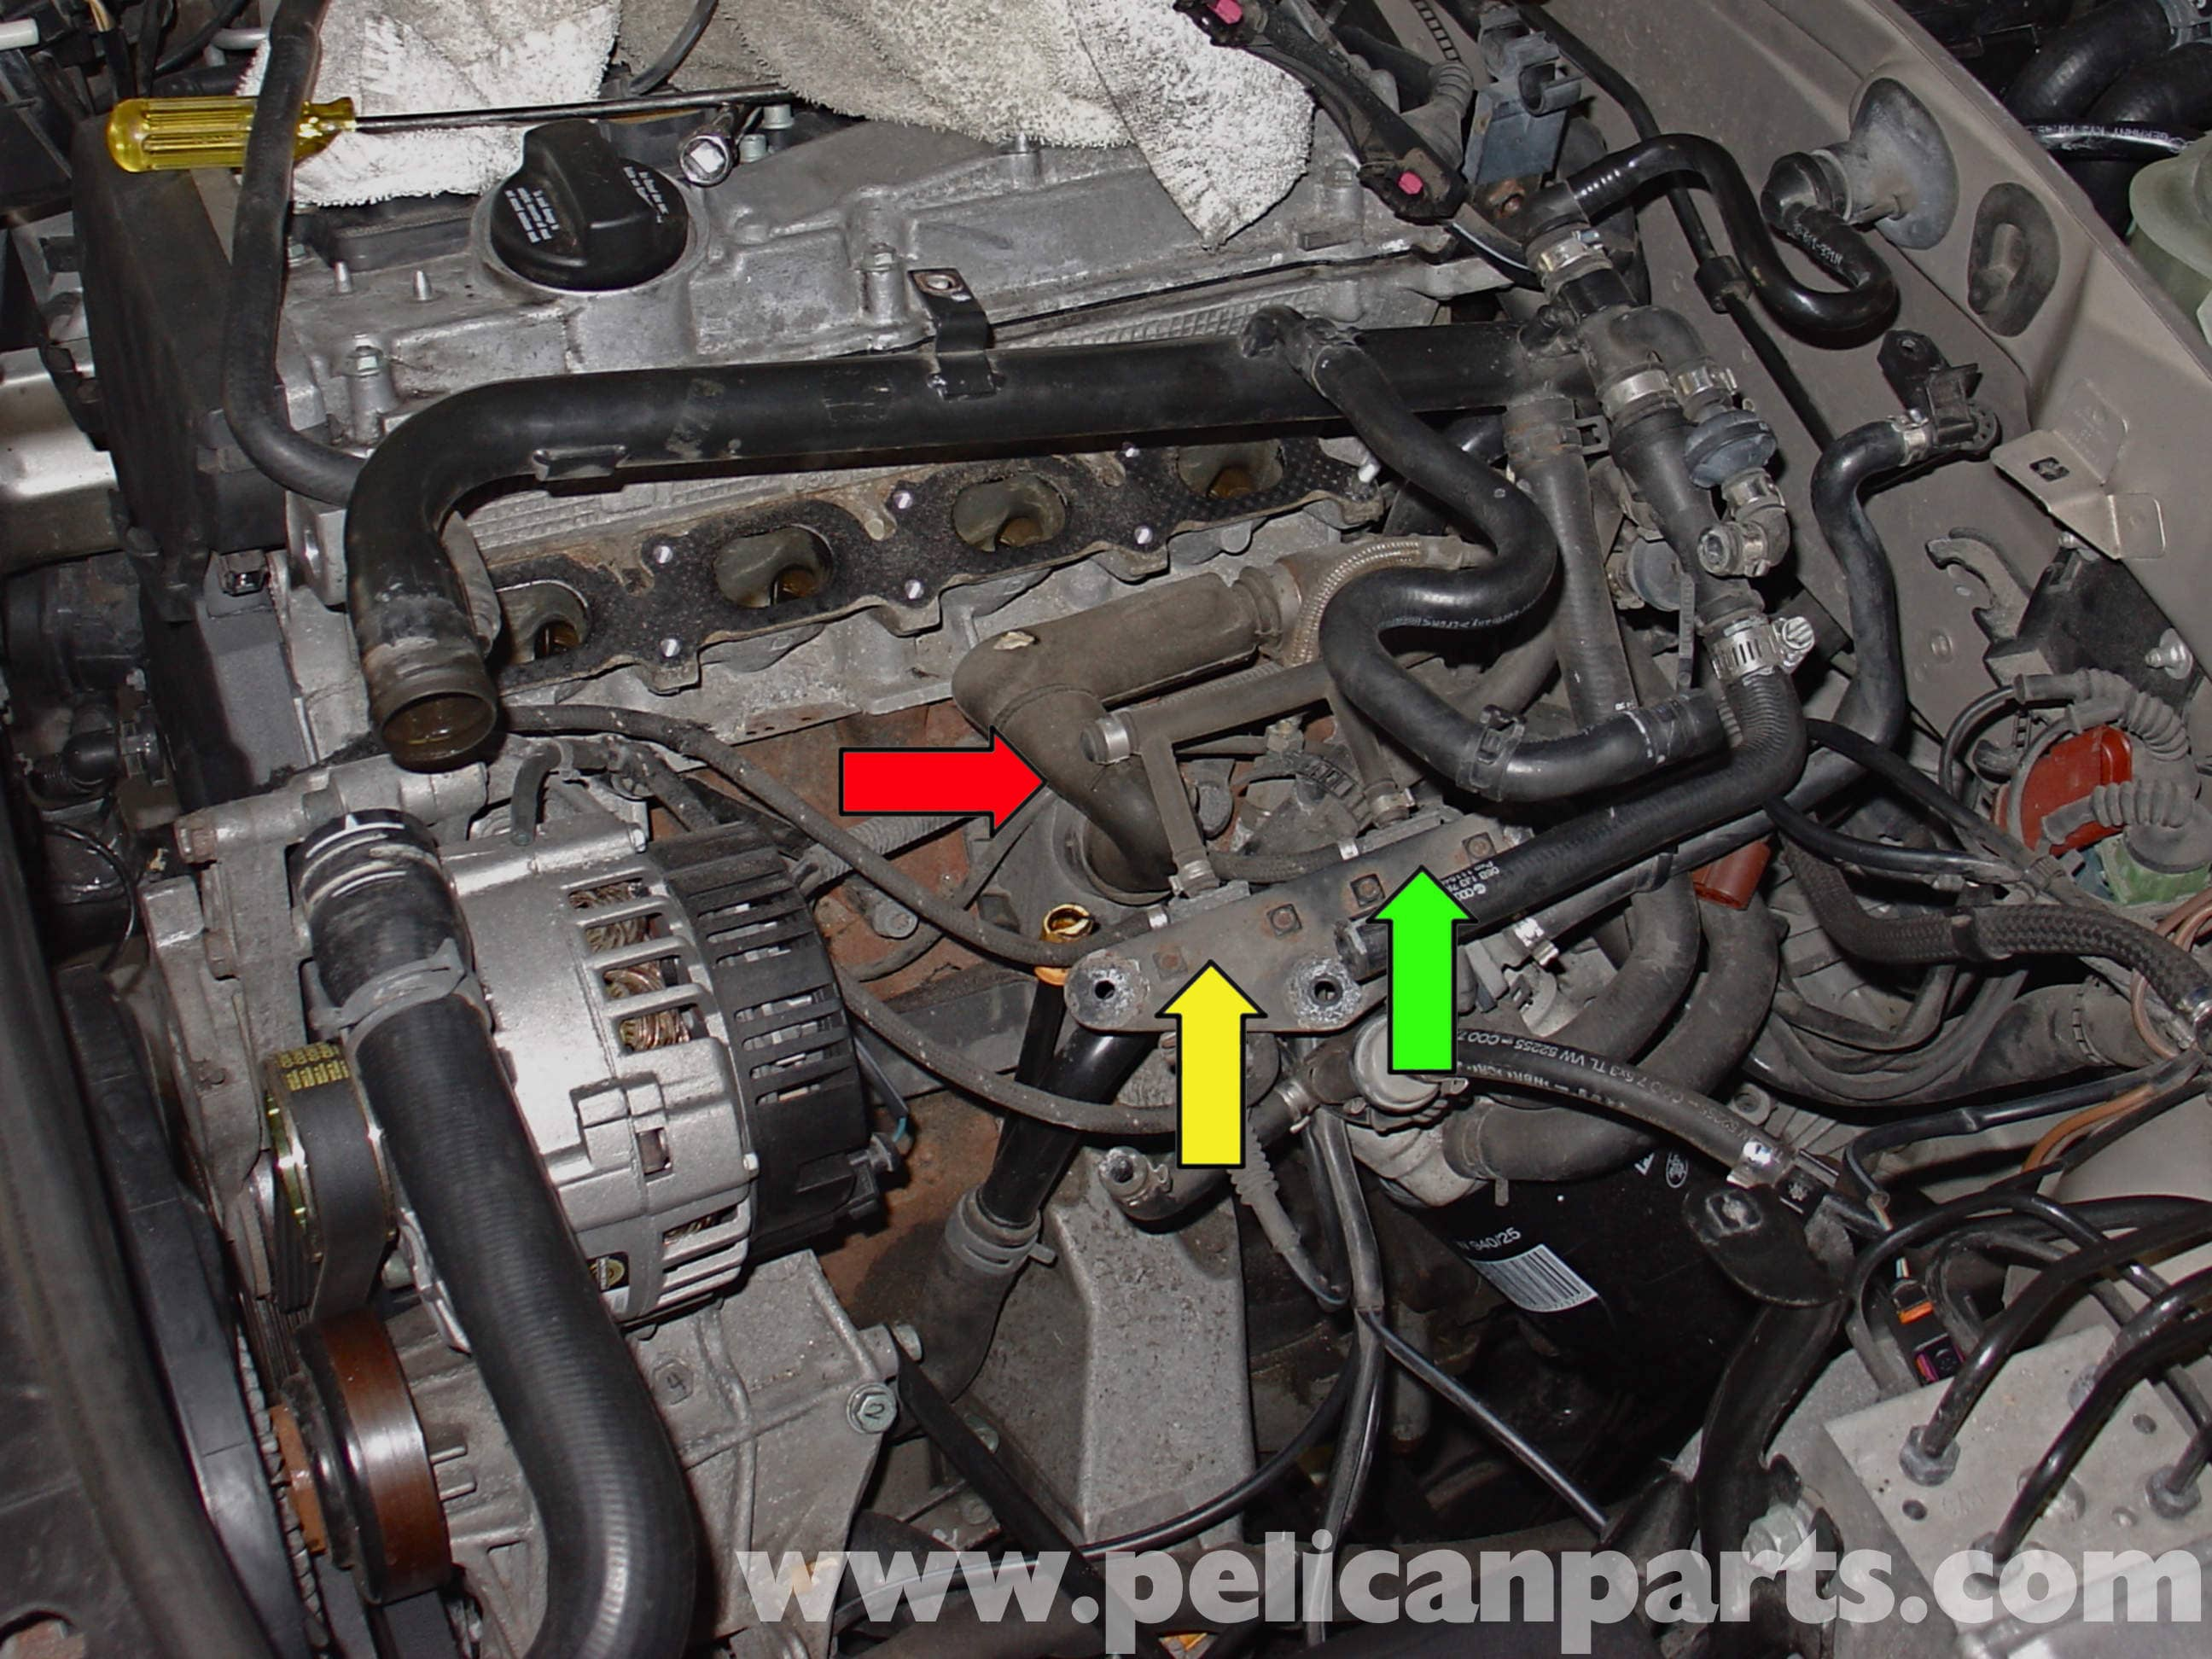 2007 Audi B7 Engine Diagram Wiring Library Jetta Large Image Extra